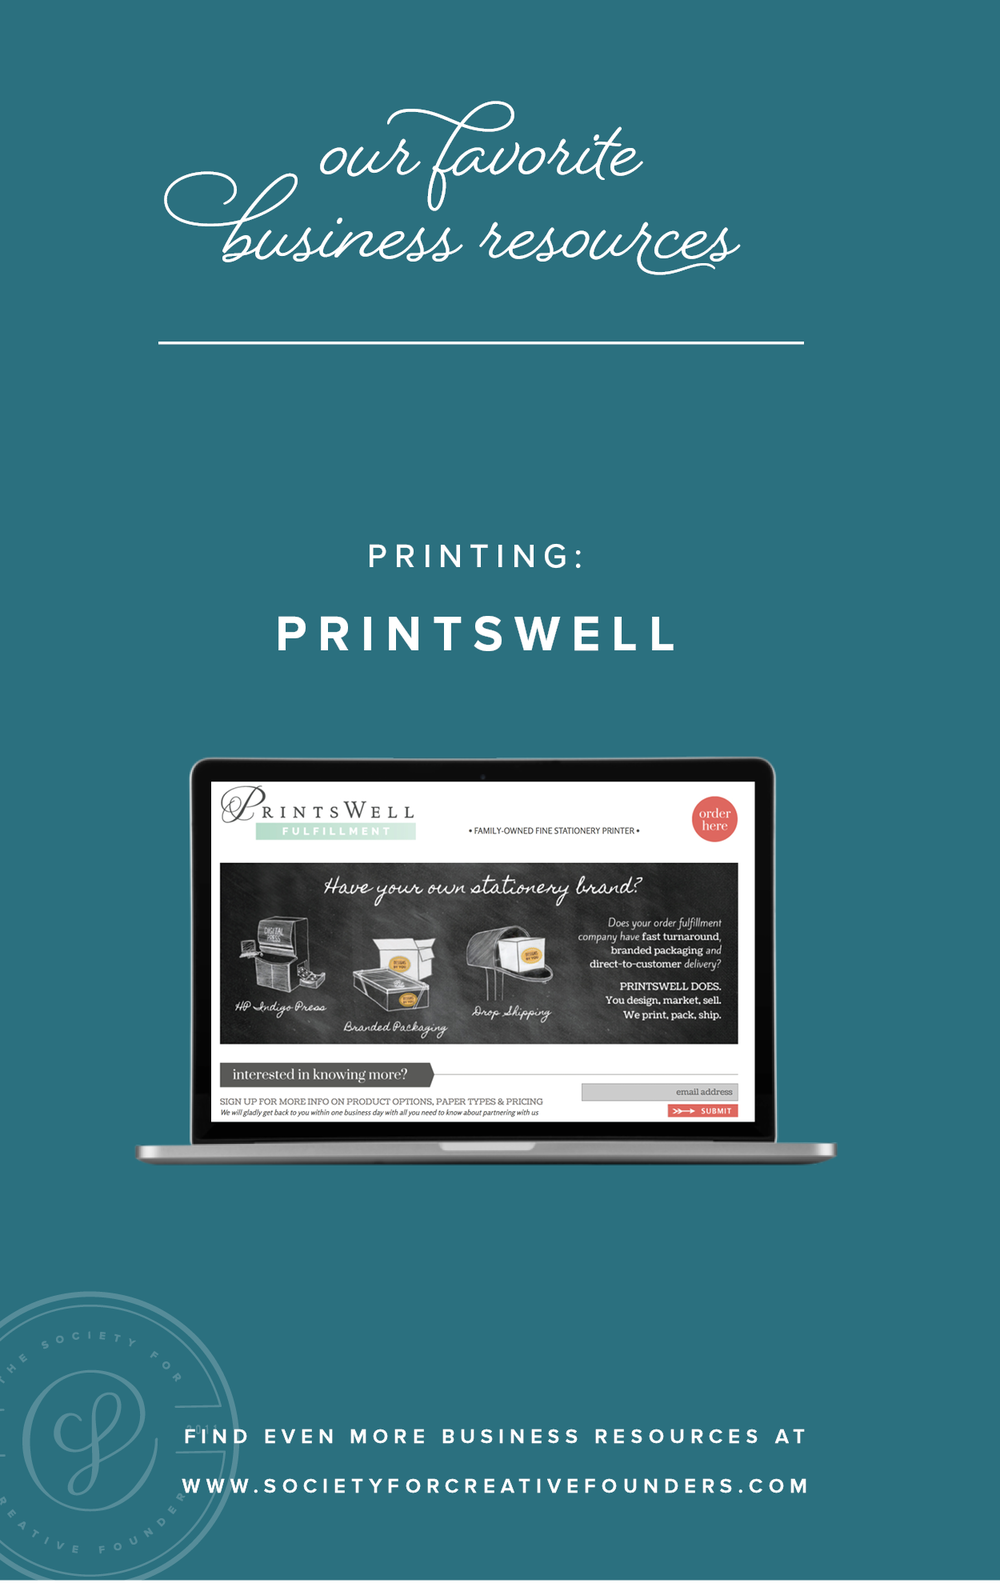 Printswell Fulfillment - Favorite Business Resources from Society for Creative Founders